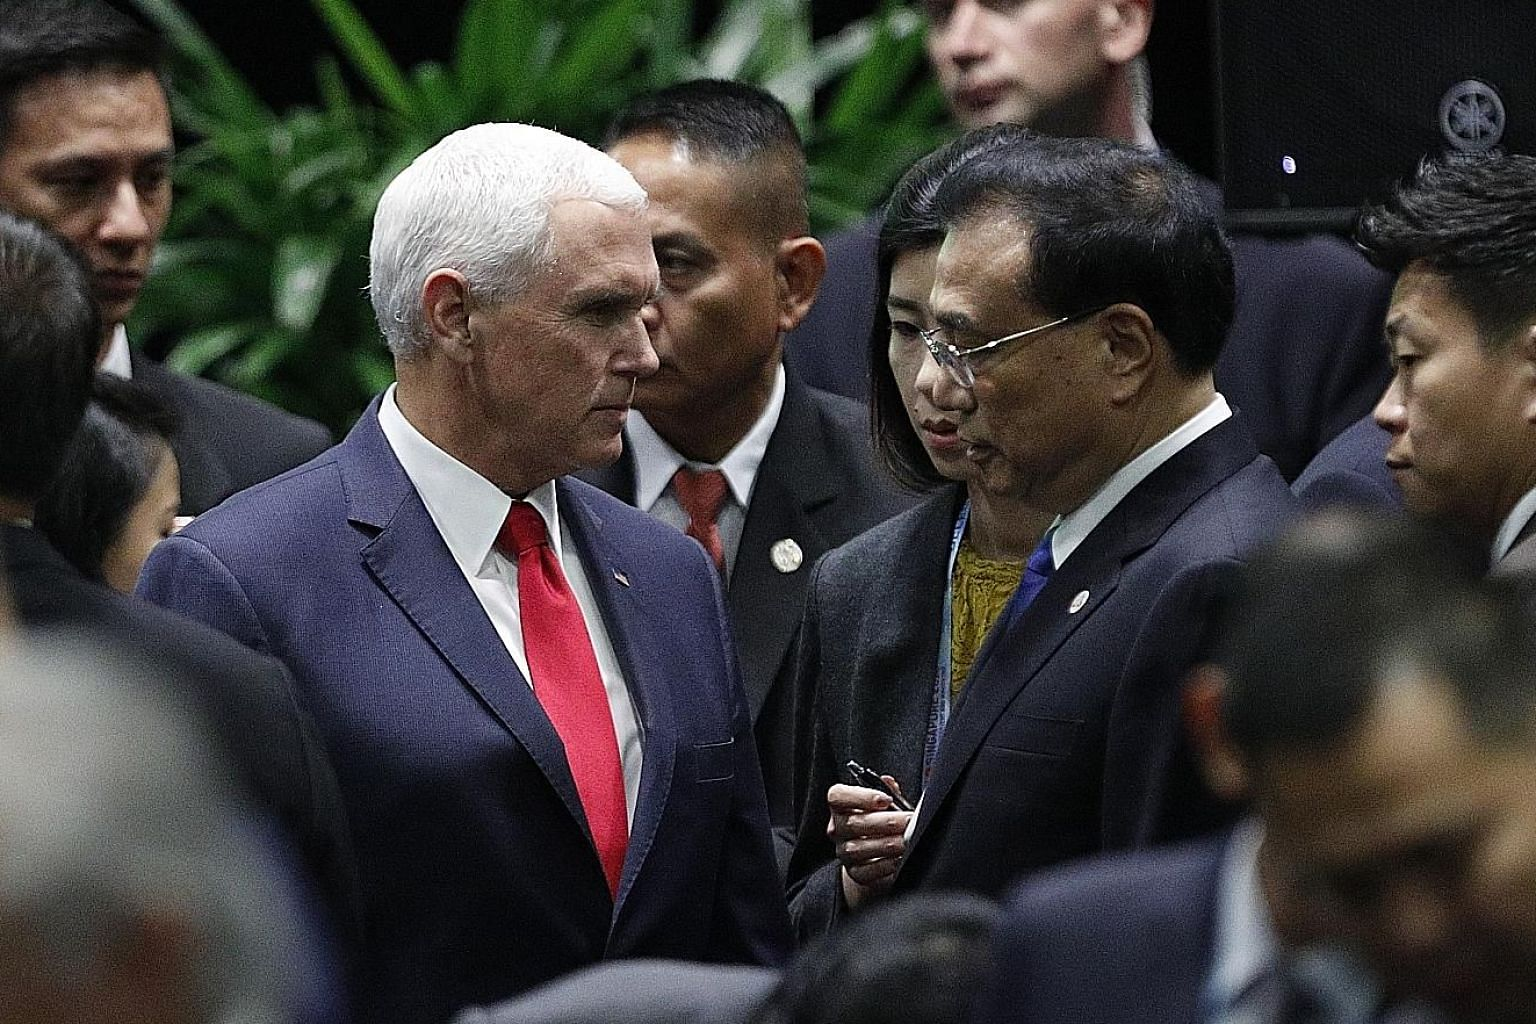 Above: US Vice-President Mike Pence and Chinese Premier Li Keqiang speaking to each other at the 13th East Asia Summit (EAS) yesterday. The US and China are in the midst of a trade war. Below: Russian President Vladimir Putin (left) speaking with Mr